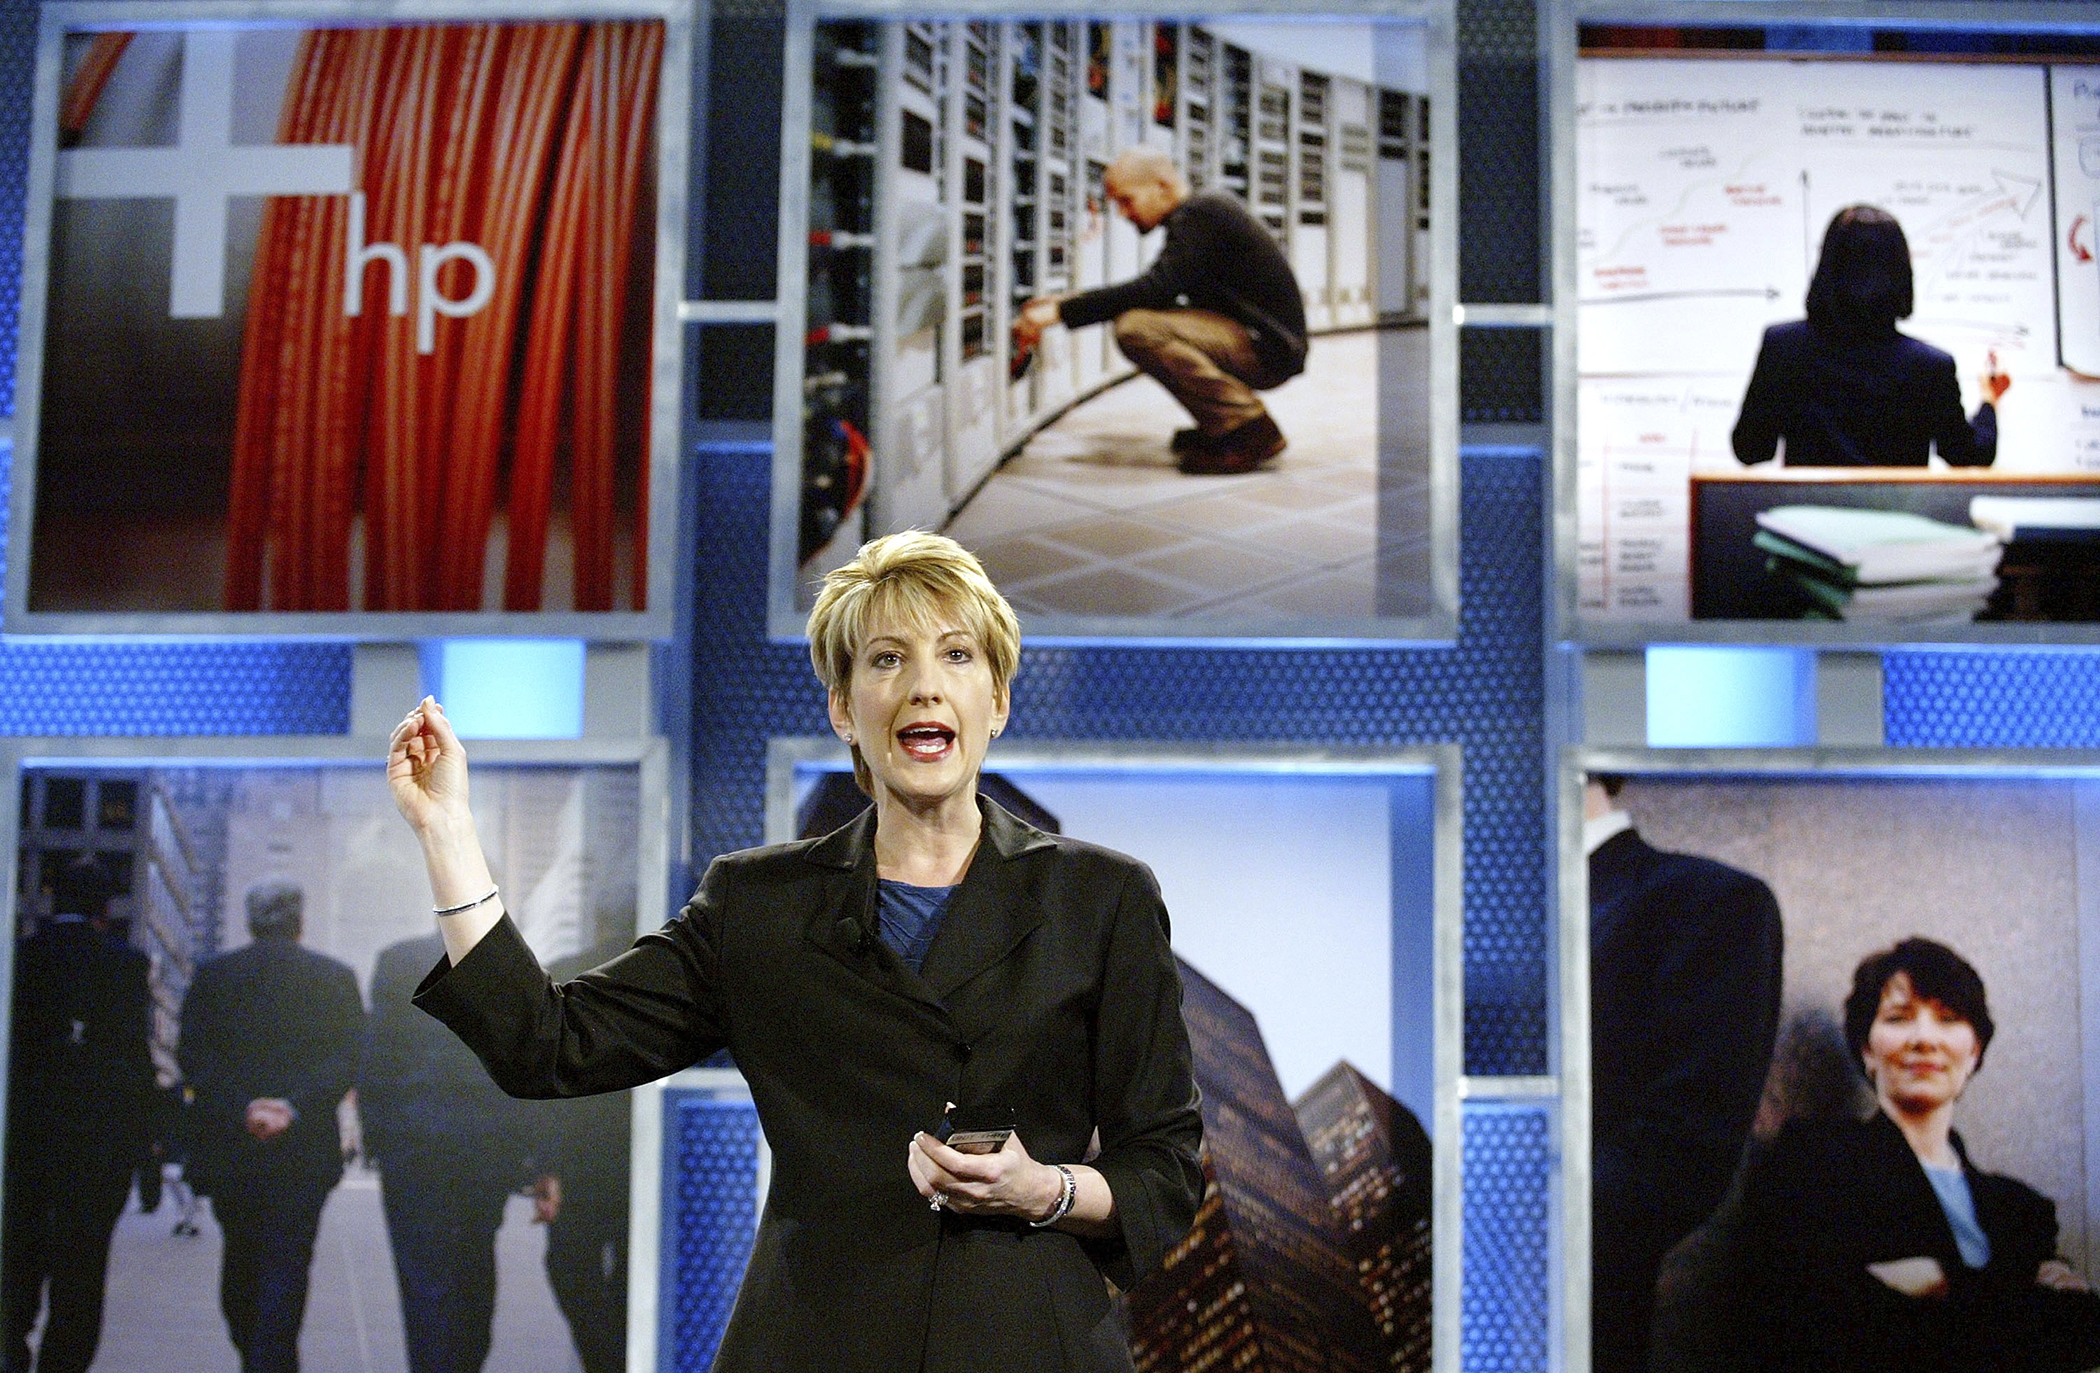 Hewlett-Packard (HP) CEO Carly Fiorina gestures as she speaks at the launch of the HP Adaptive Enterprise Strategy May 6, 2003 in San Jose, California. HP announced new products and services for companies to make their computing systems more adaptive to the changing computer world.